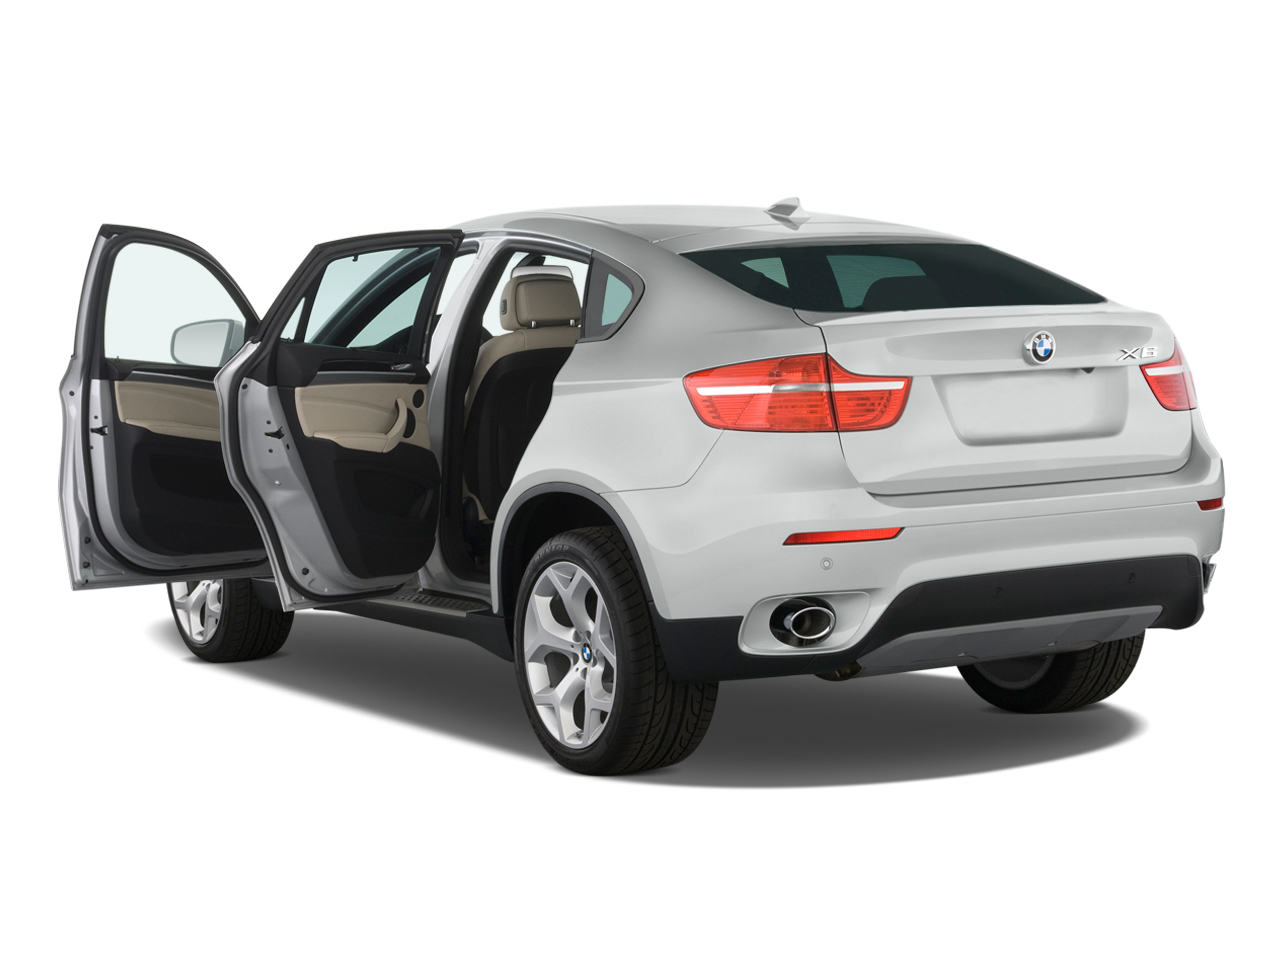 2009 Bmw X6 Xdrive50i Bmw Luxury Crossover Suv Review Automobile Magazine